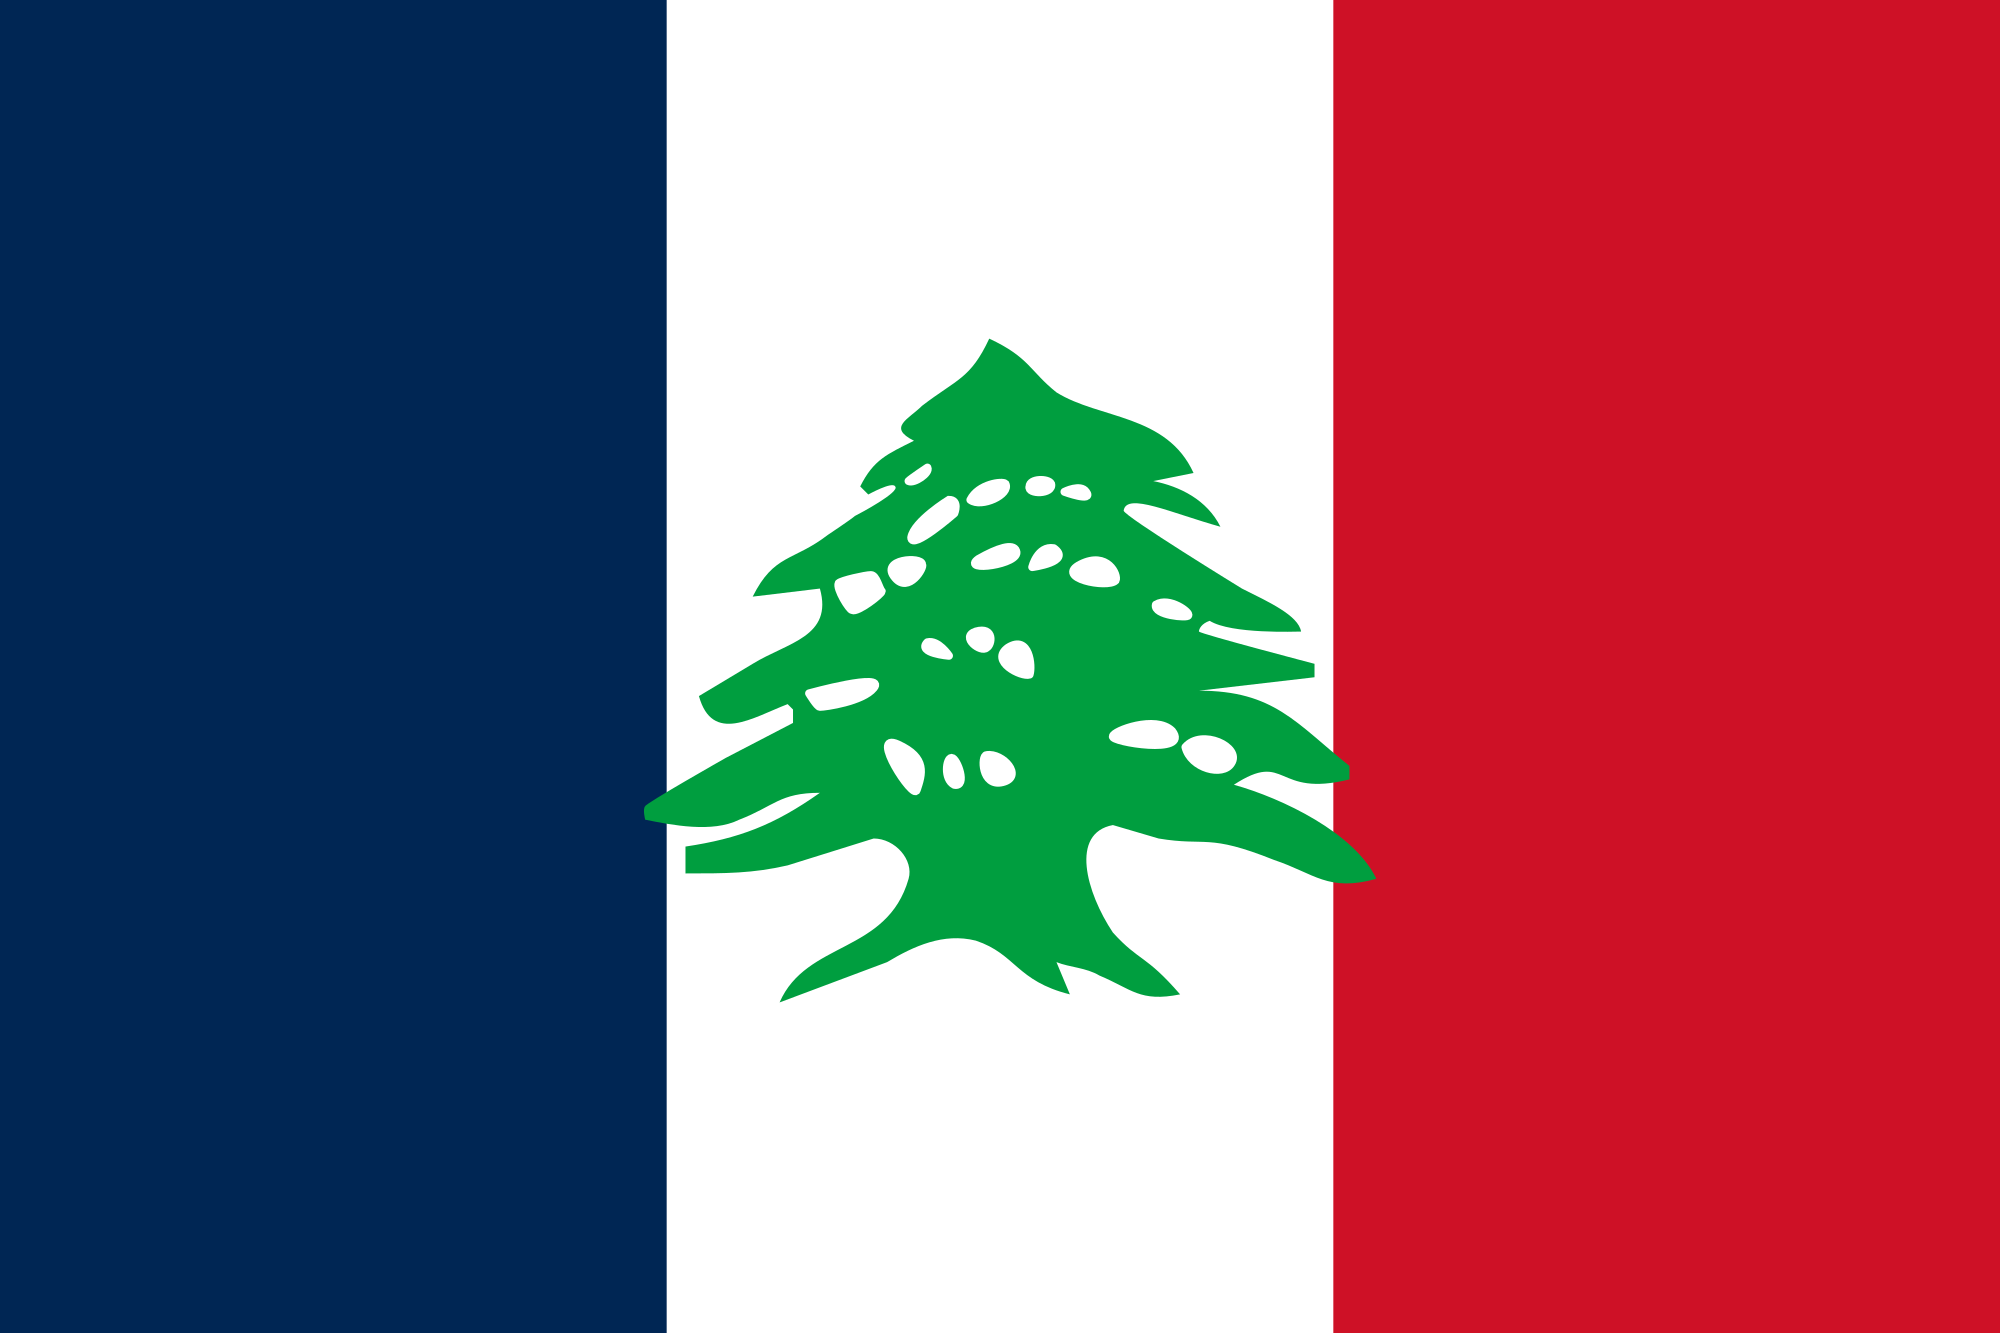 The relationship between France and Lebanon throughout history and its impact on the French protectorate